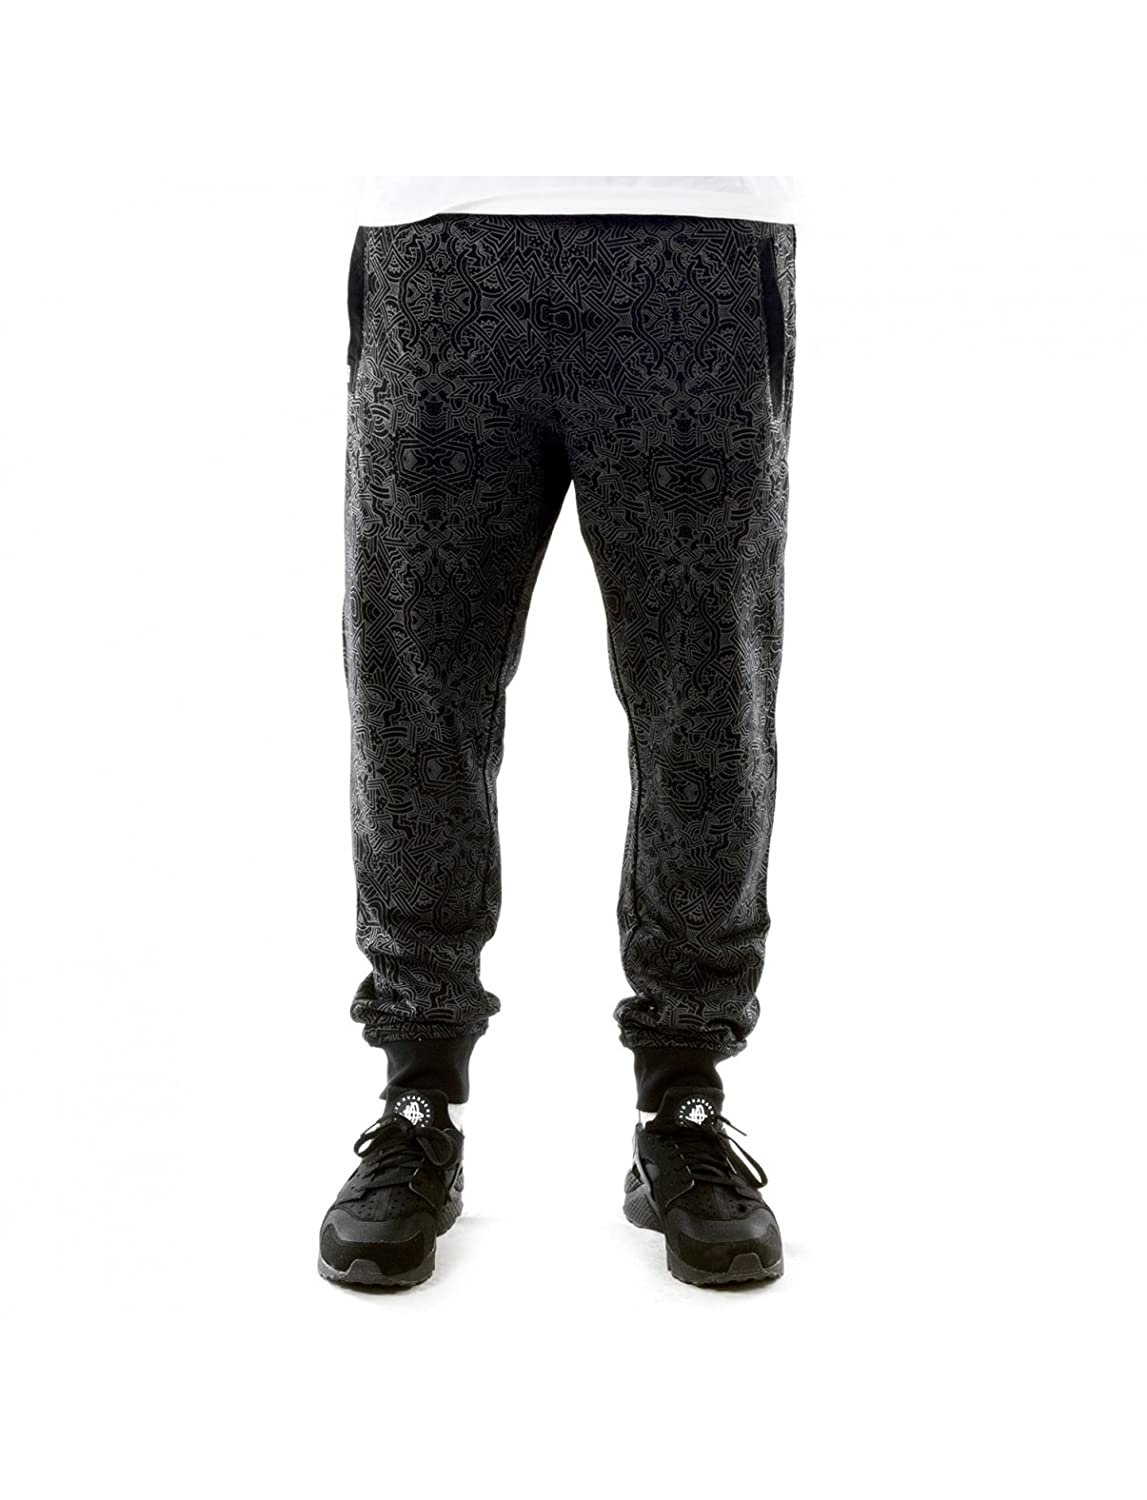 Wrung Pants - Tribal black size: XL (X-Large)